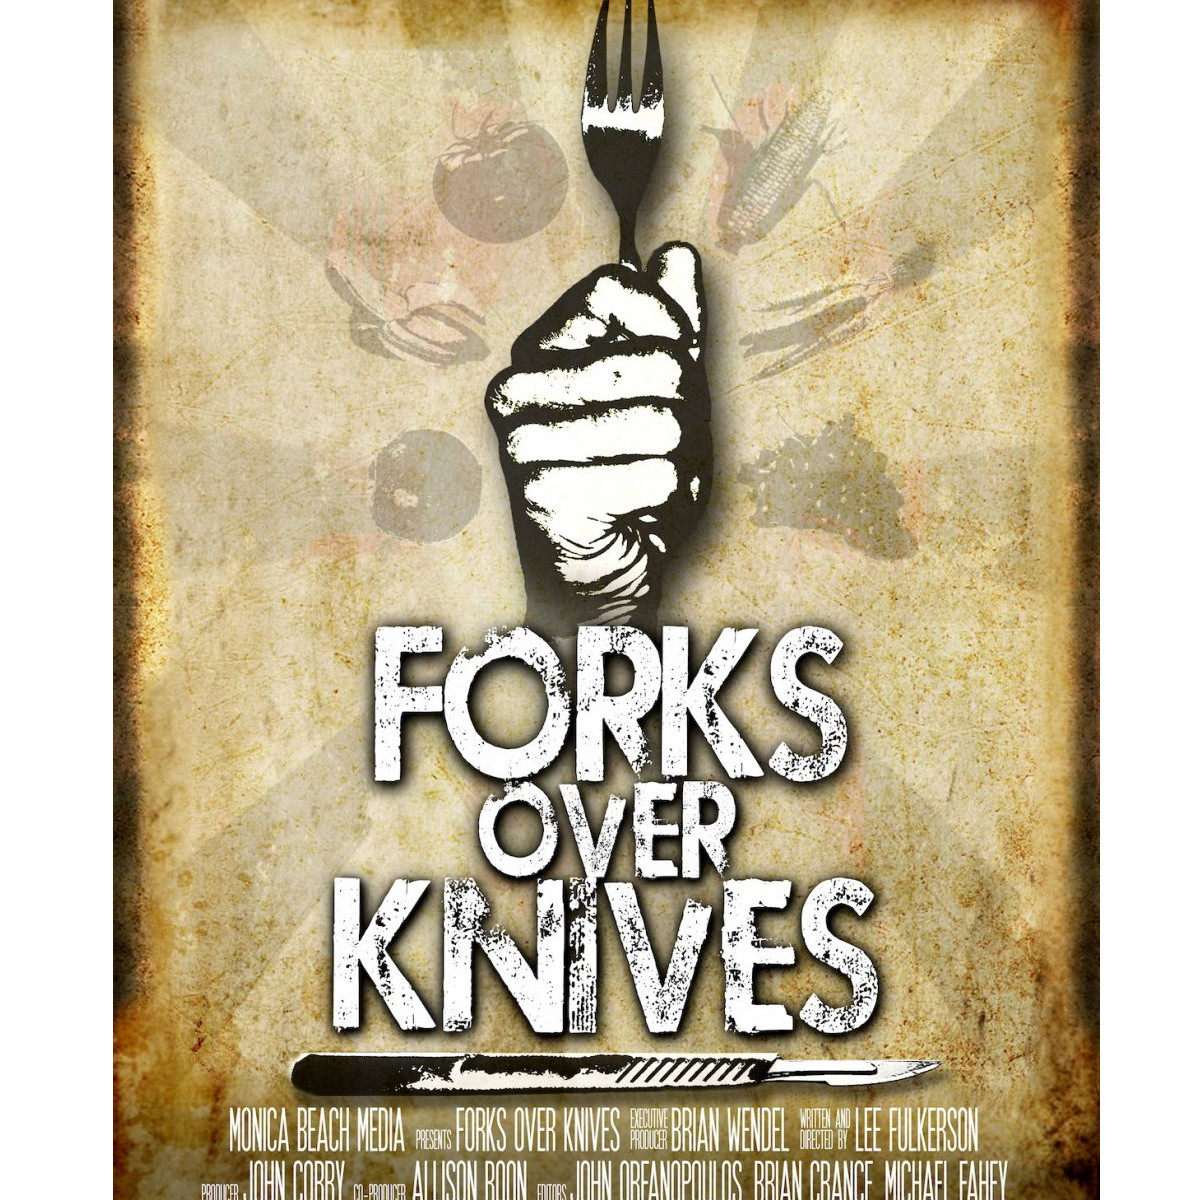 News_Forks over Knives_movie poster